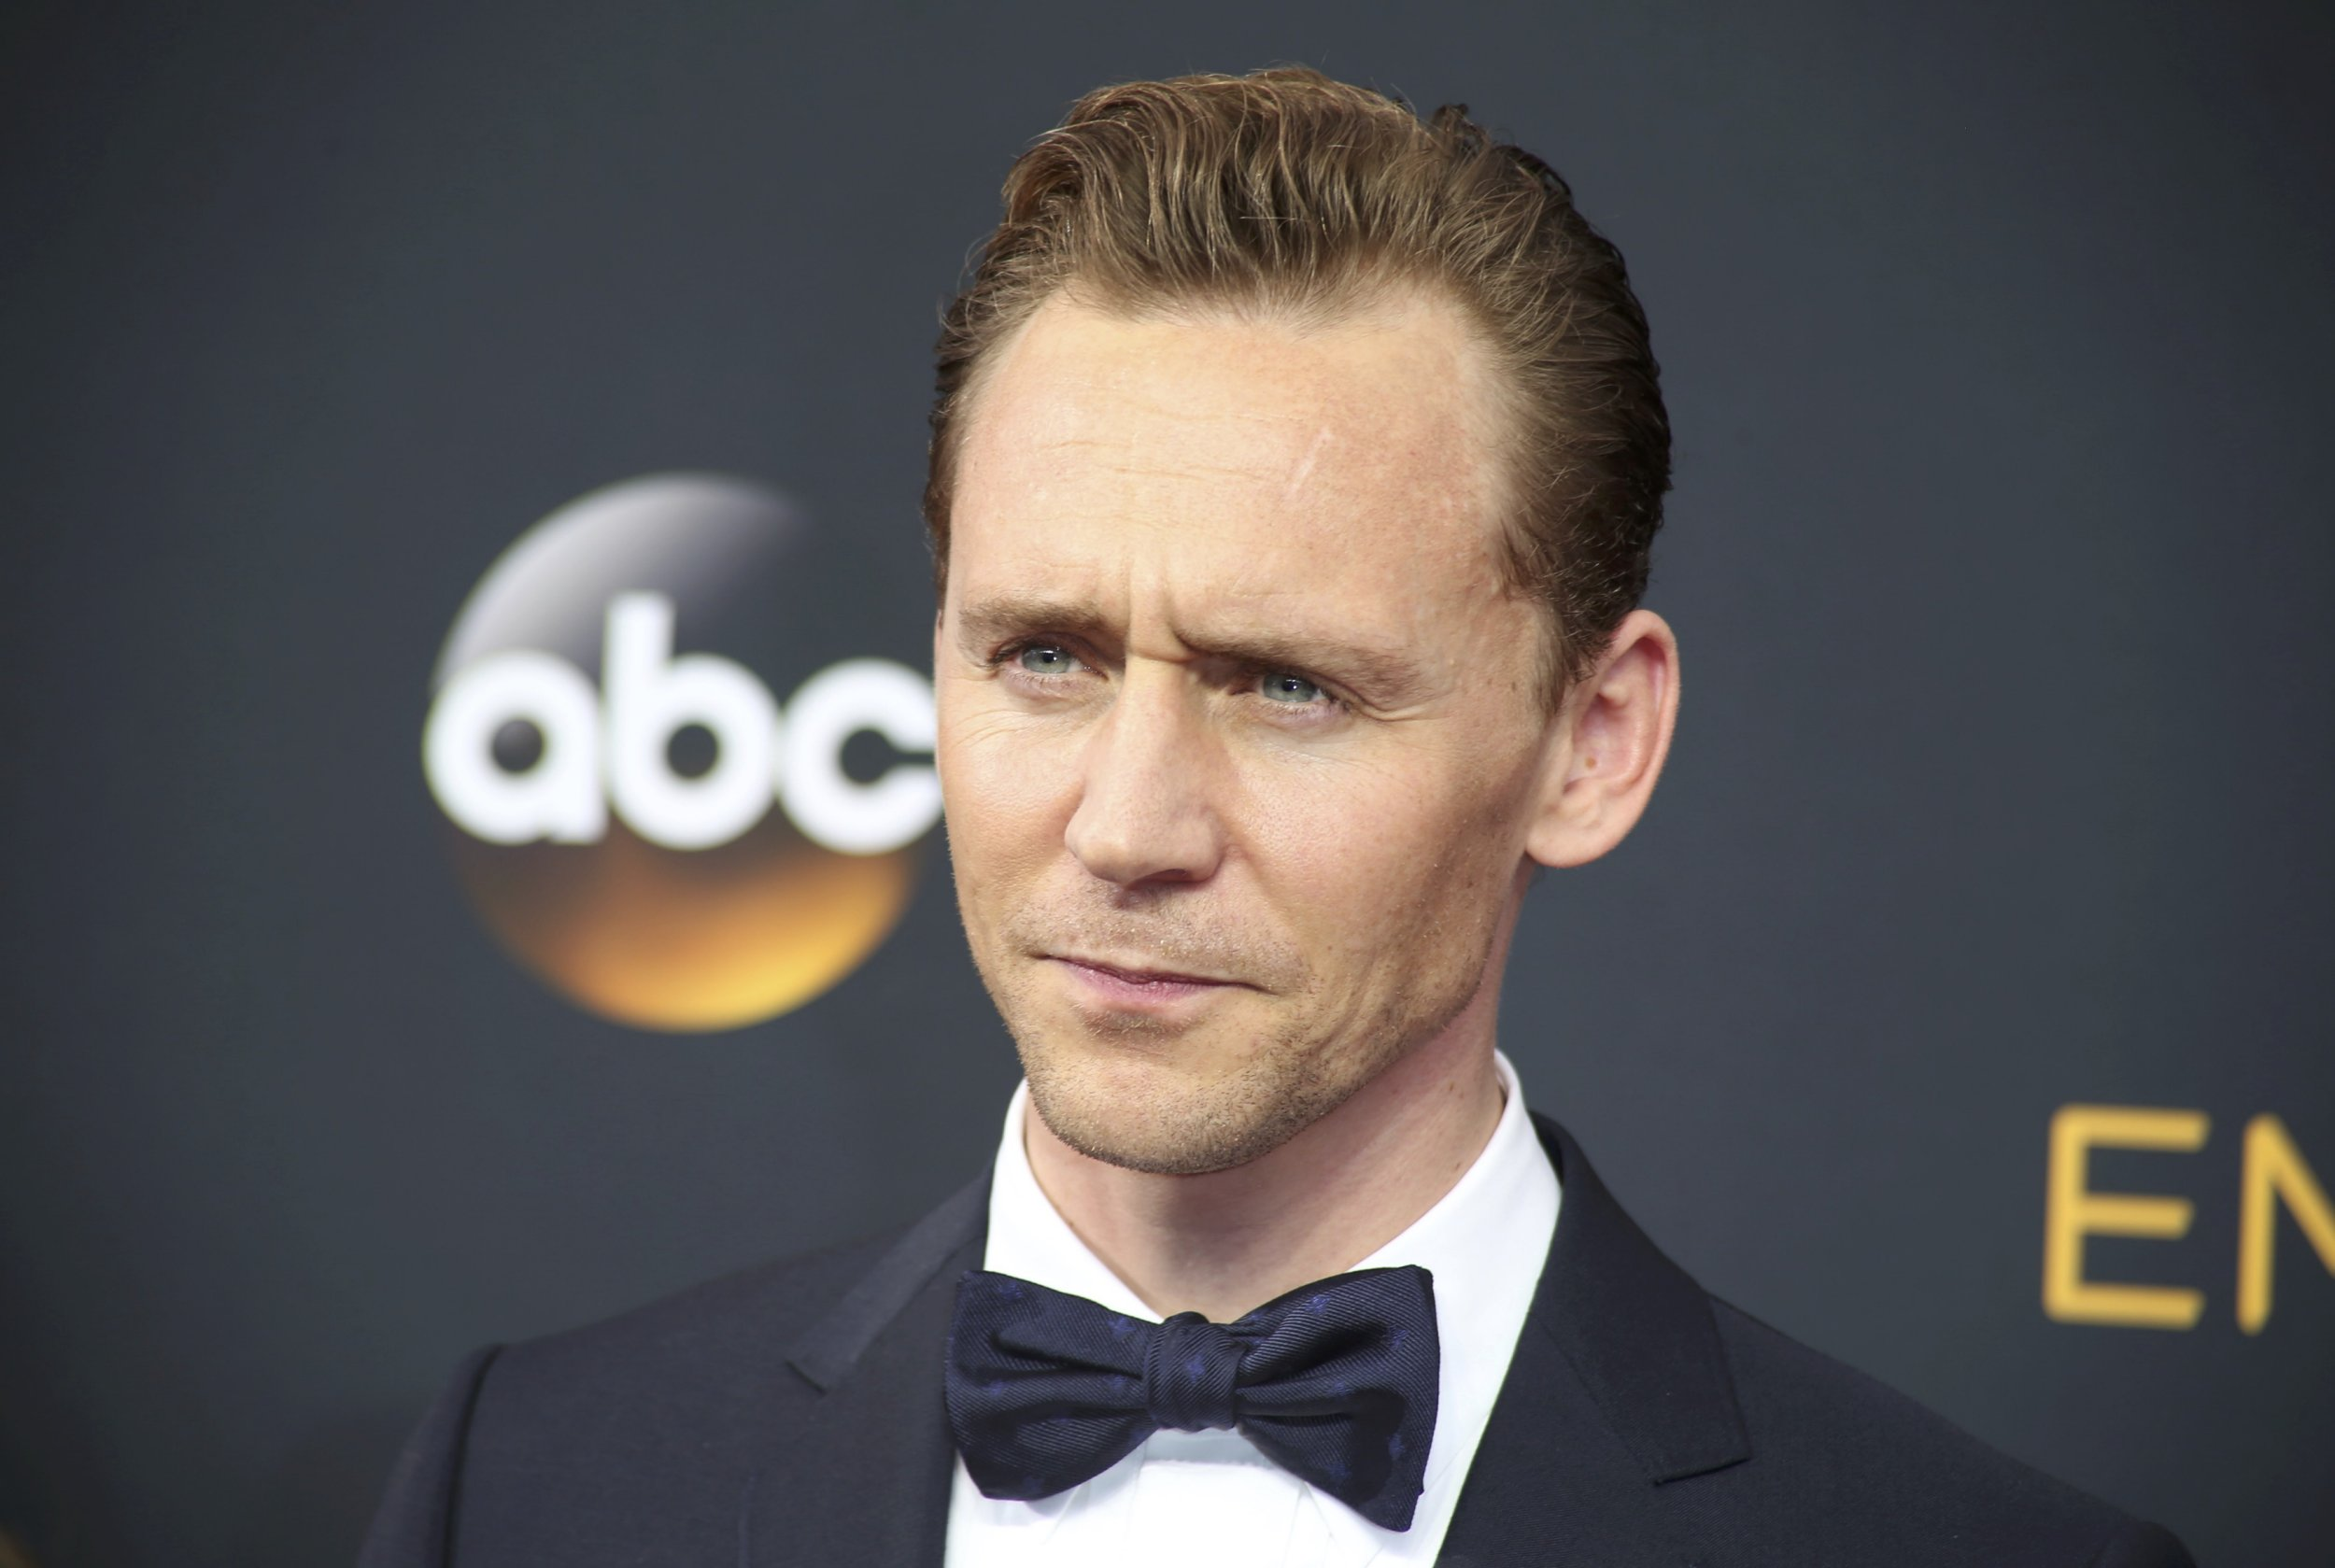 Emmys 2016: Tom Hiddleston walks red carpet alone after Taylor Swift split